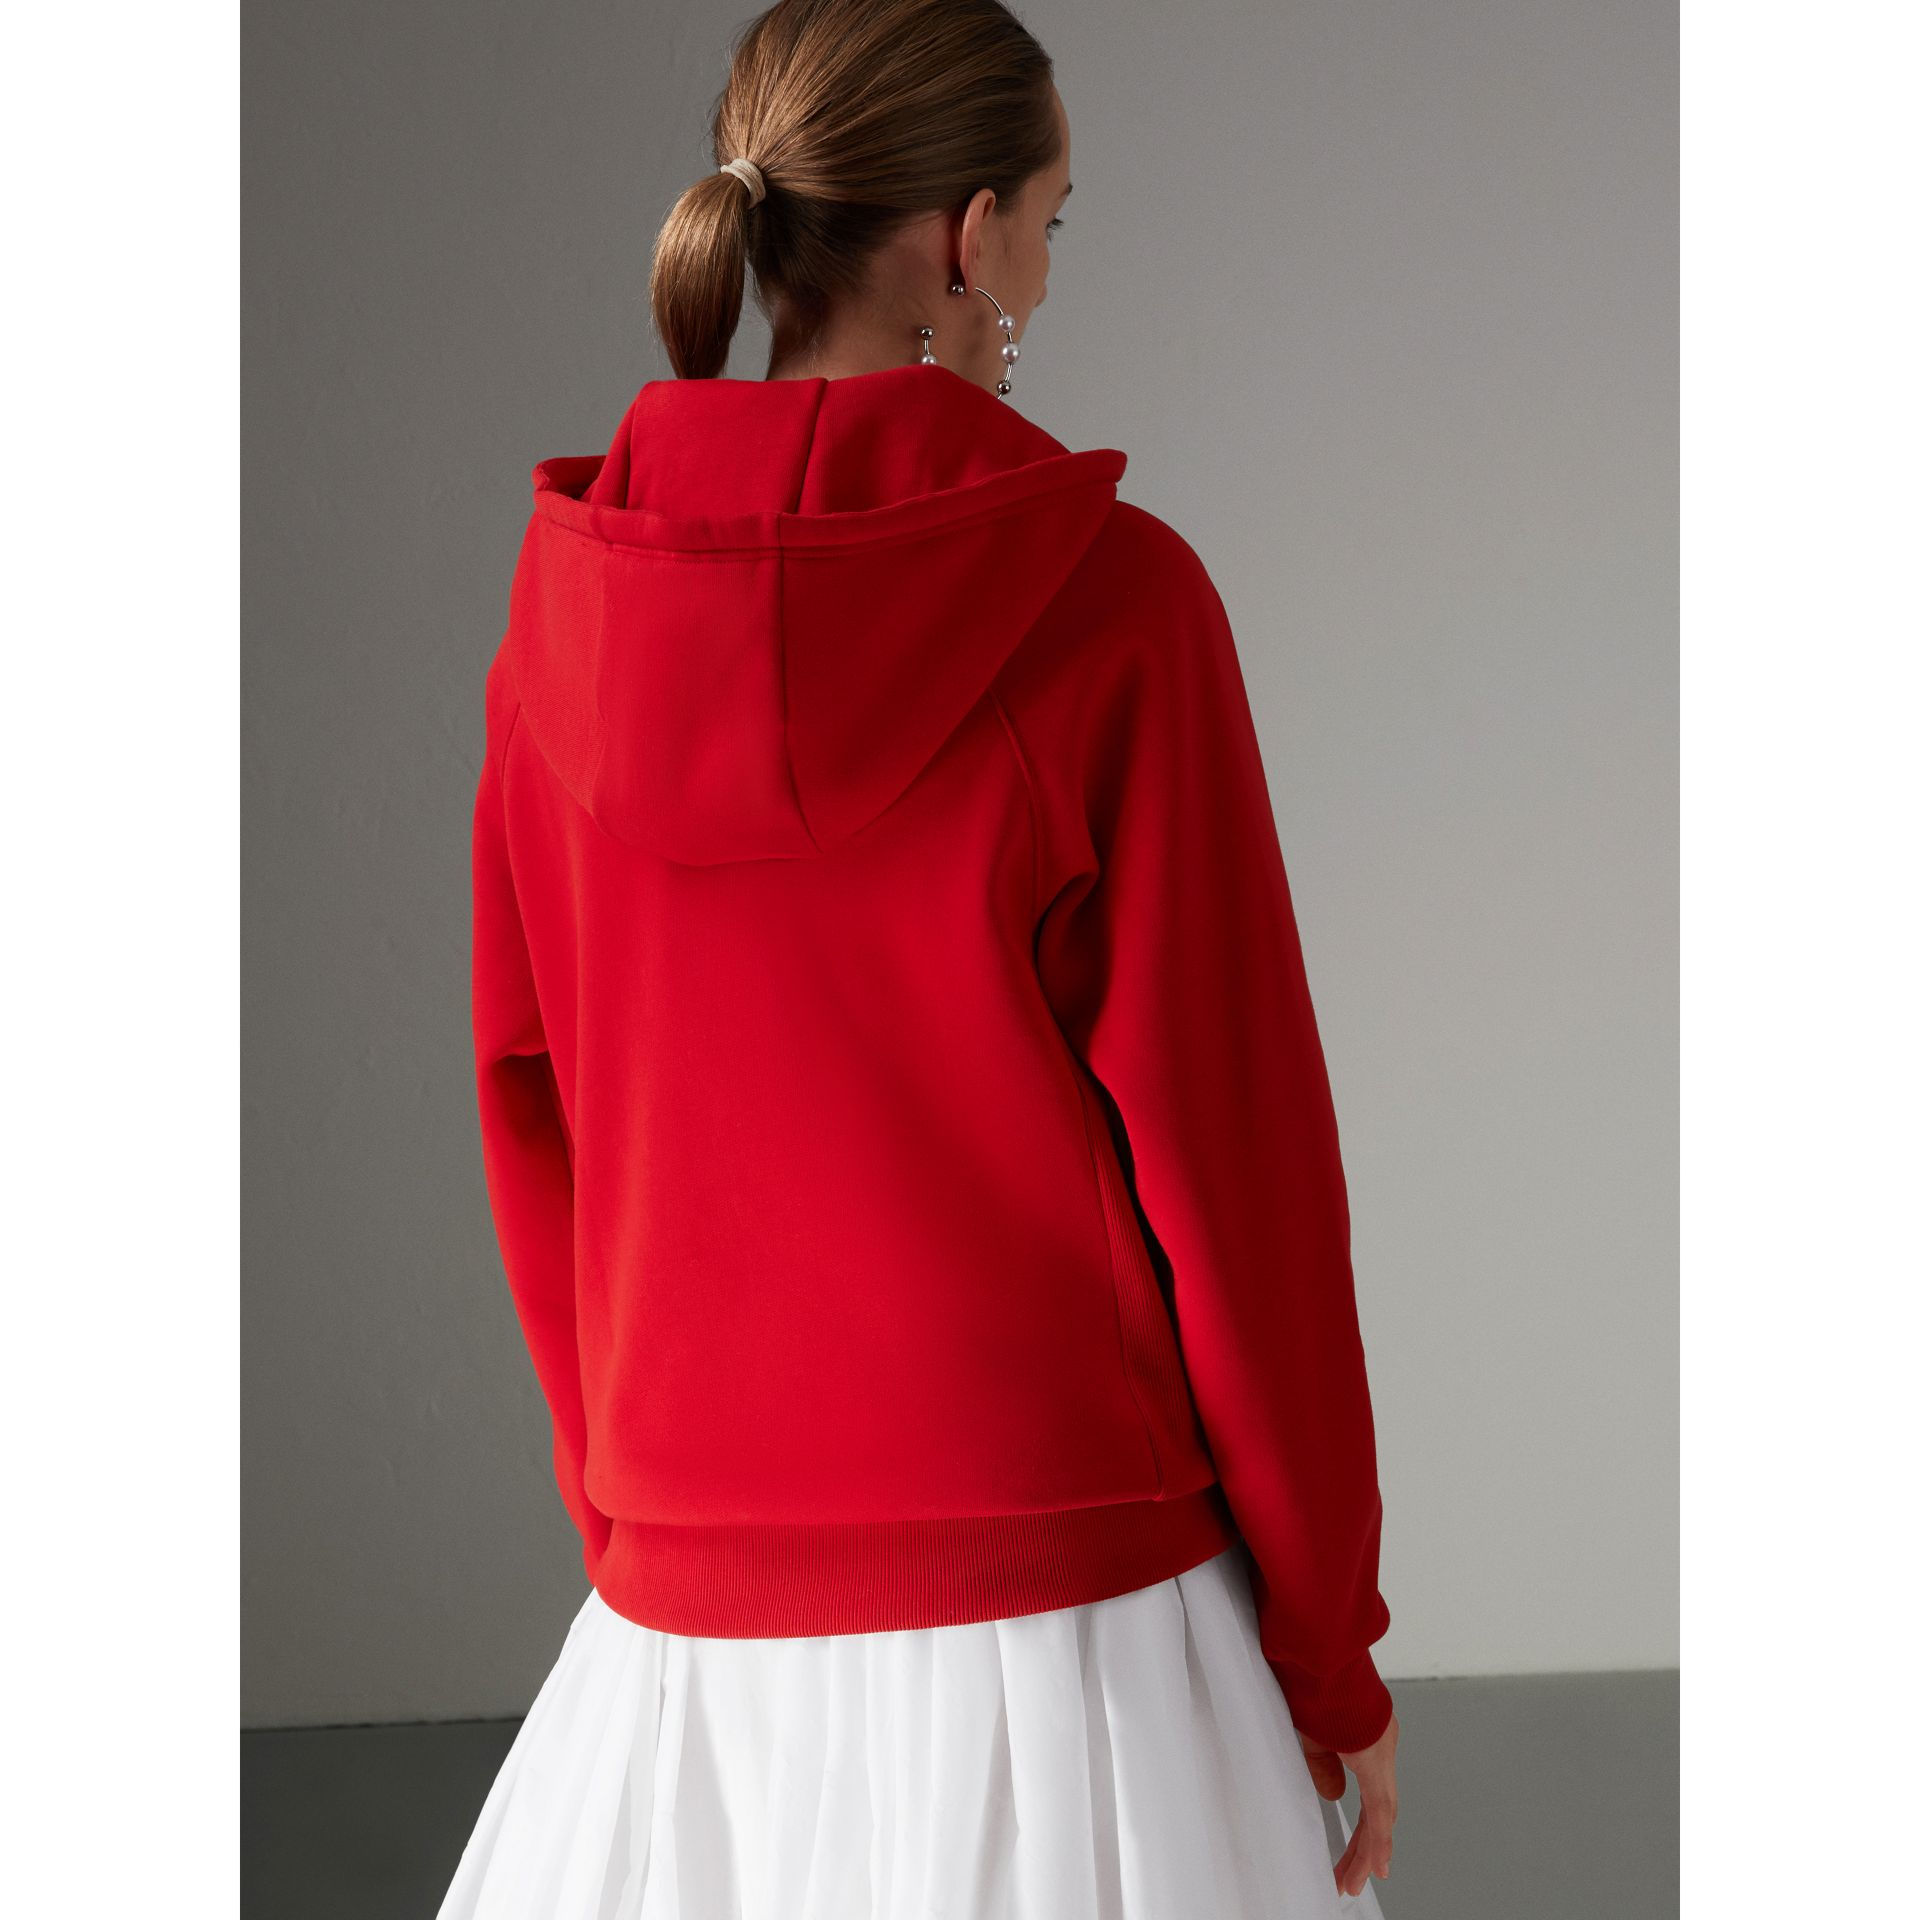 Heart Intarsia Cotton Blend Hoodie in Bright Red - Women | Burberry Australia - gallery image 2